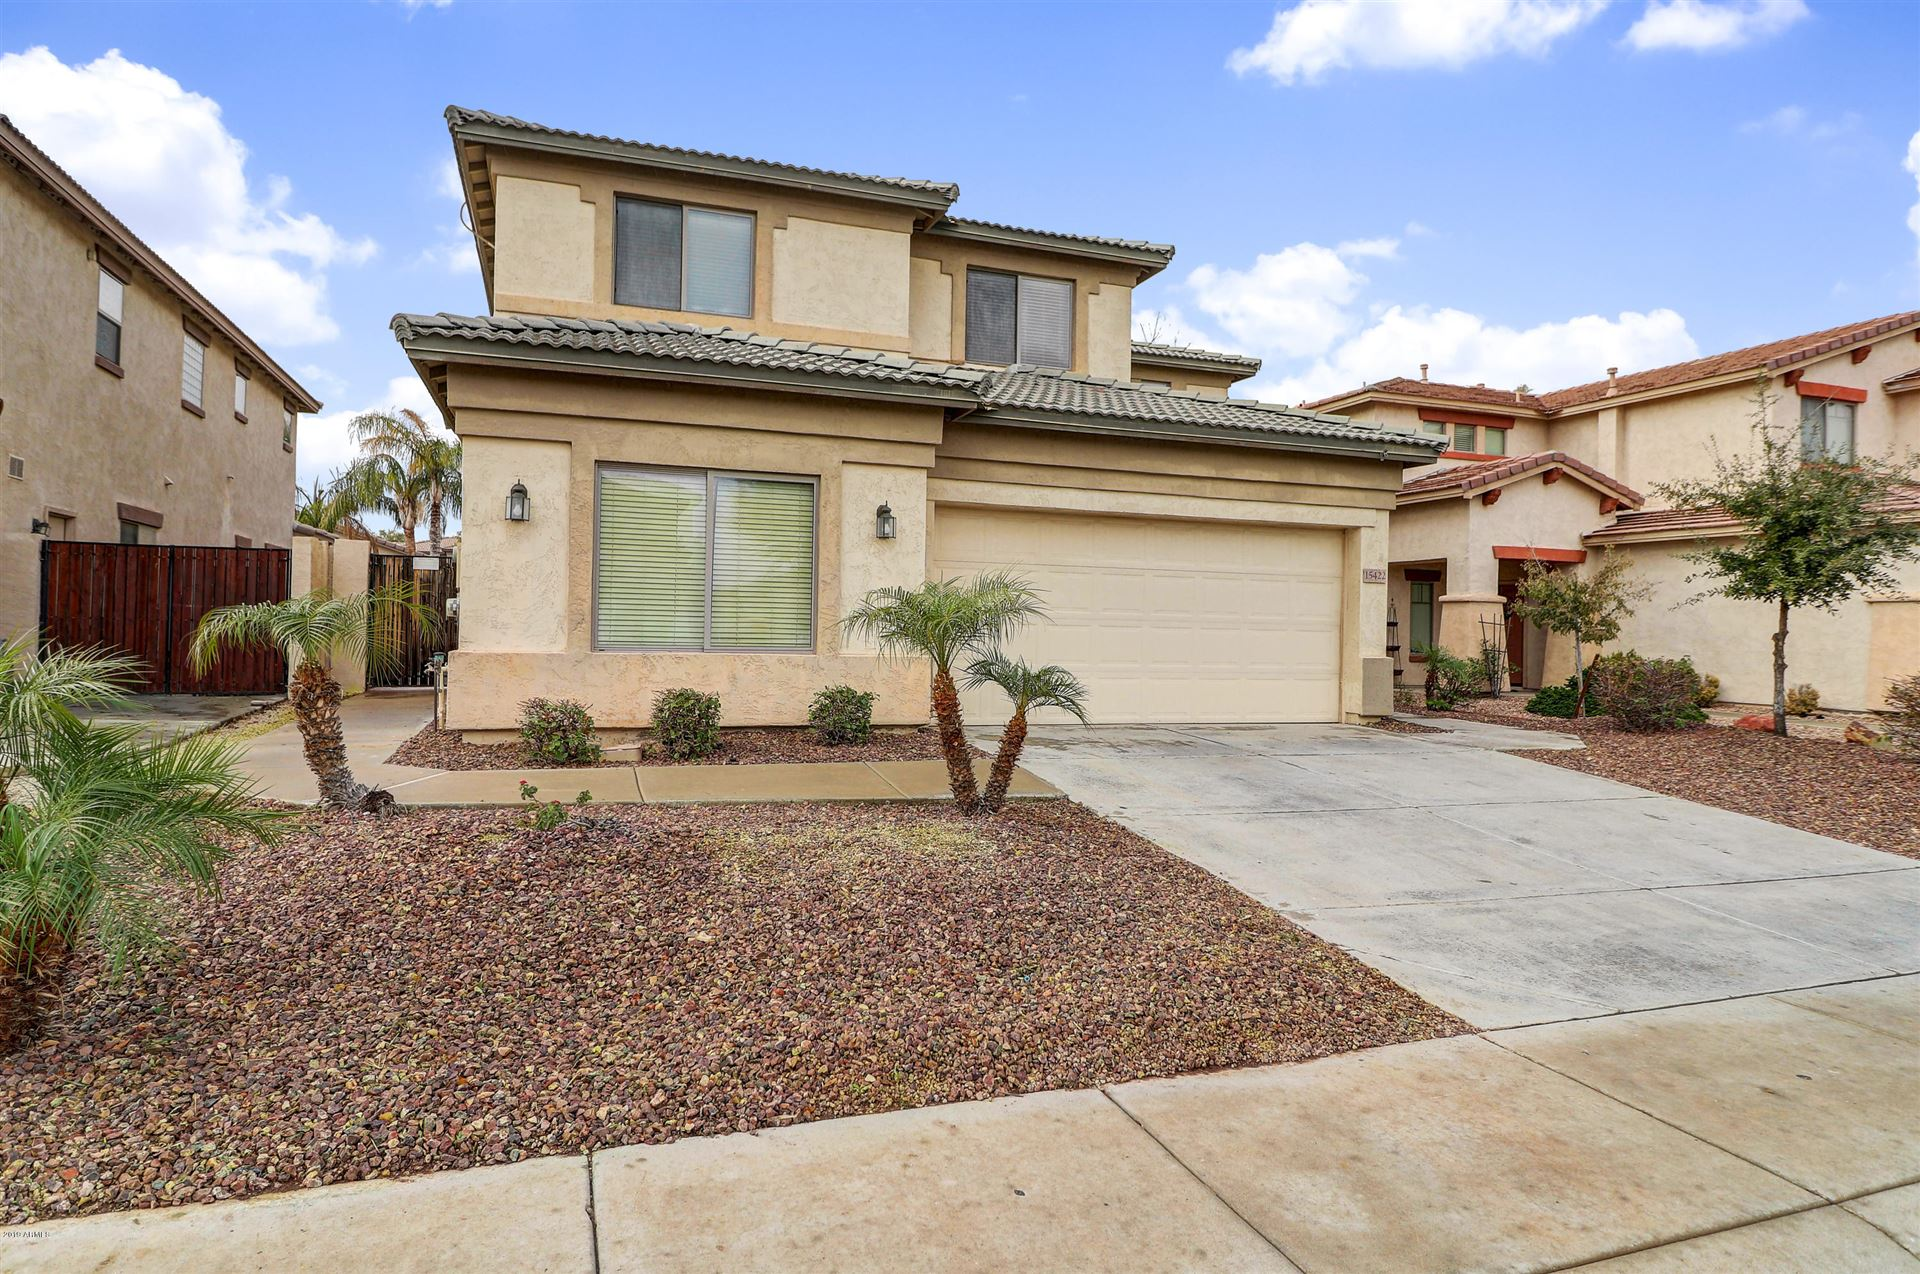 15422 N 172ND Lane, Surprise, AZ 85388 - #: 6017983